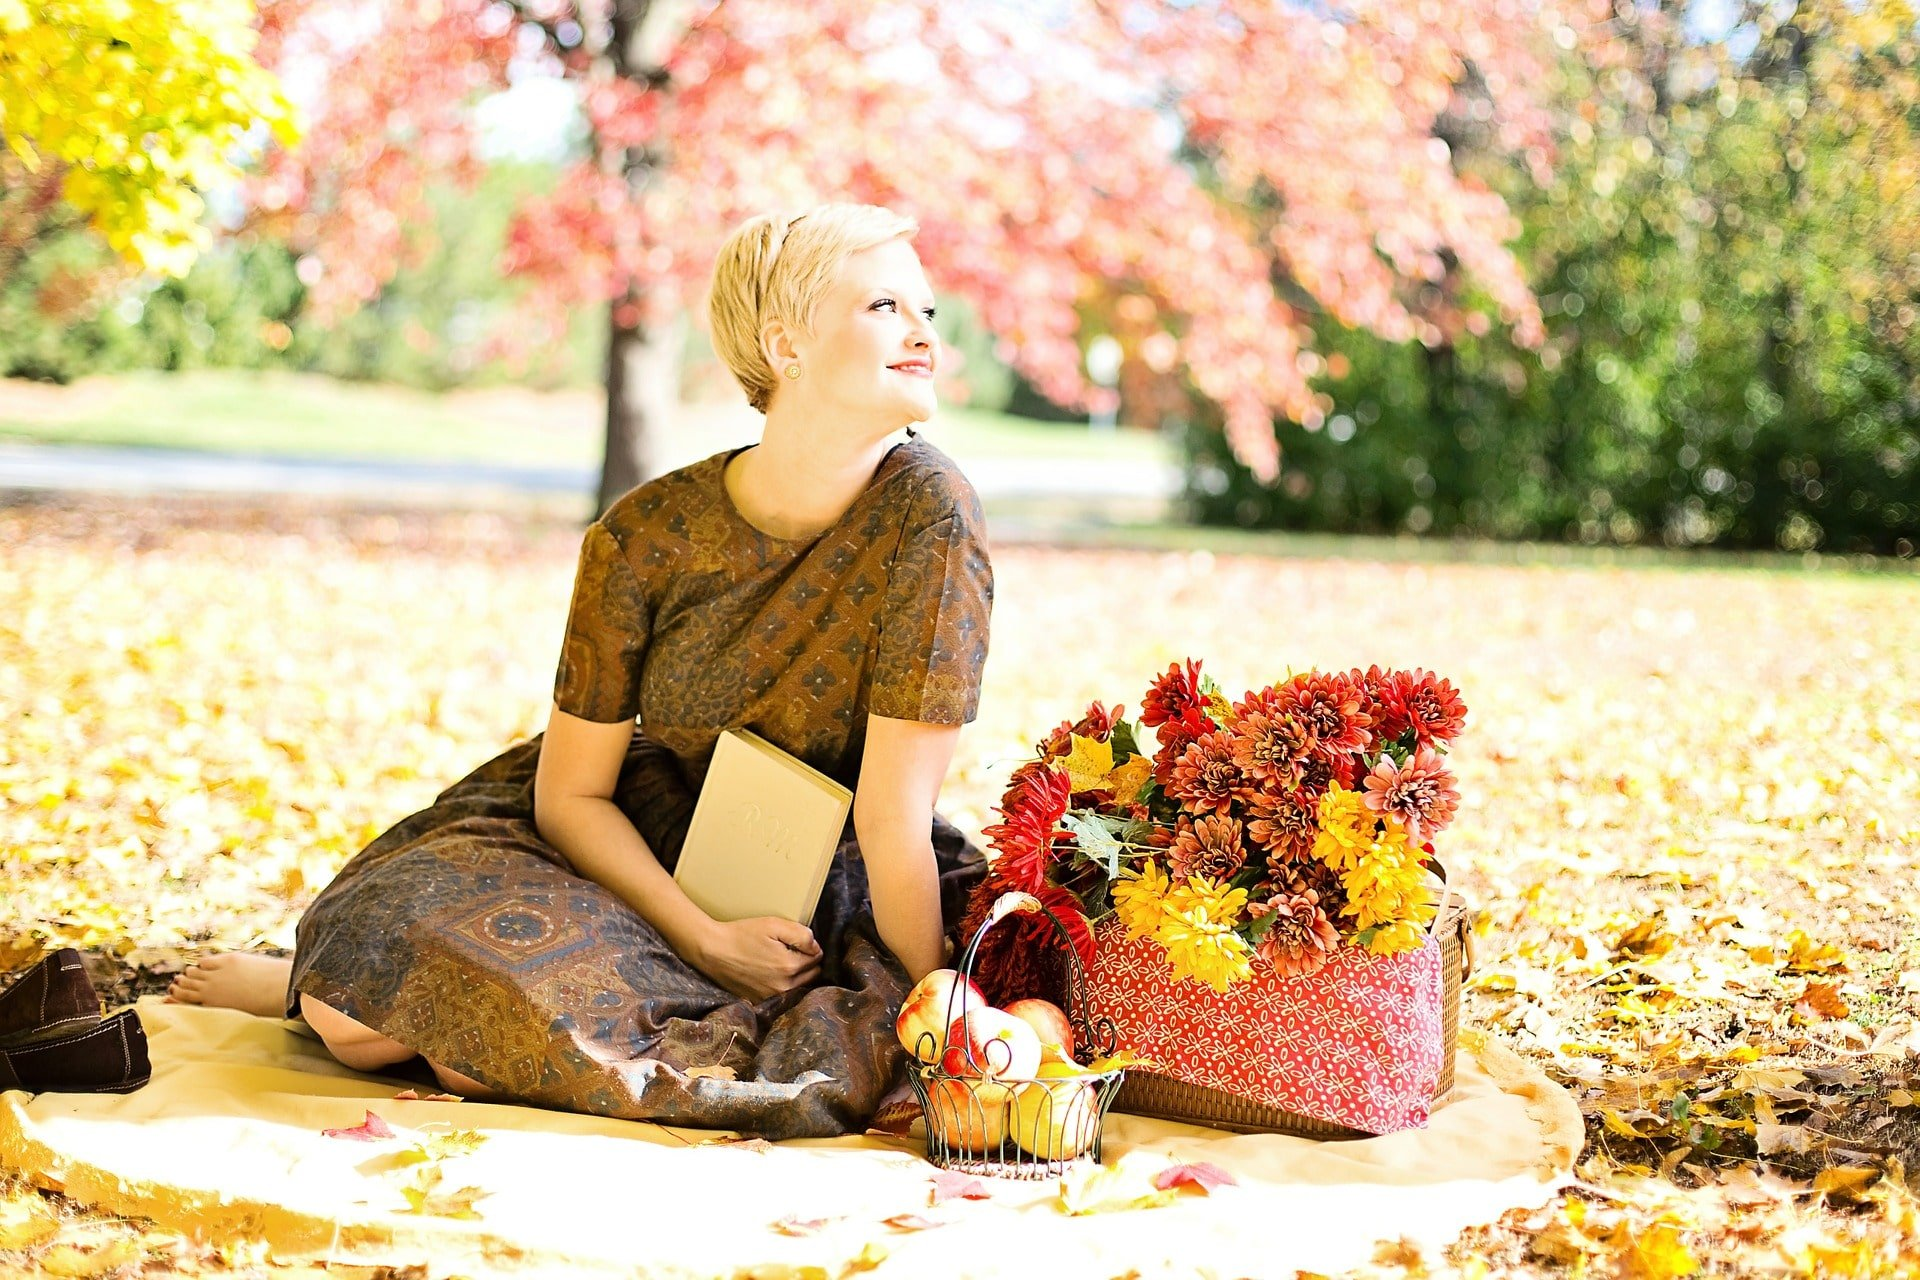 woman sitting outside reading quotes next to a basket of flowers